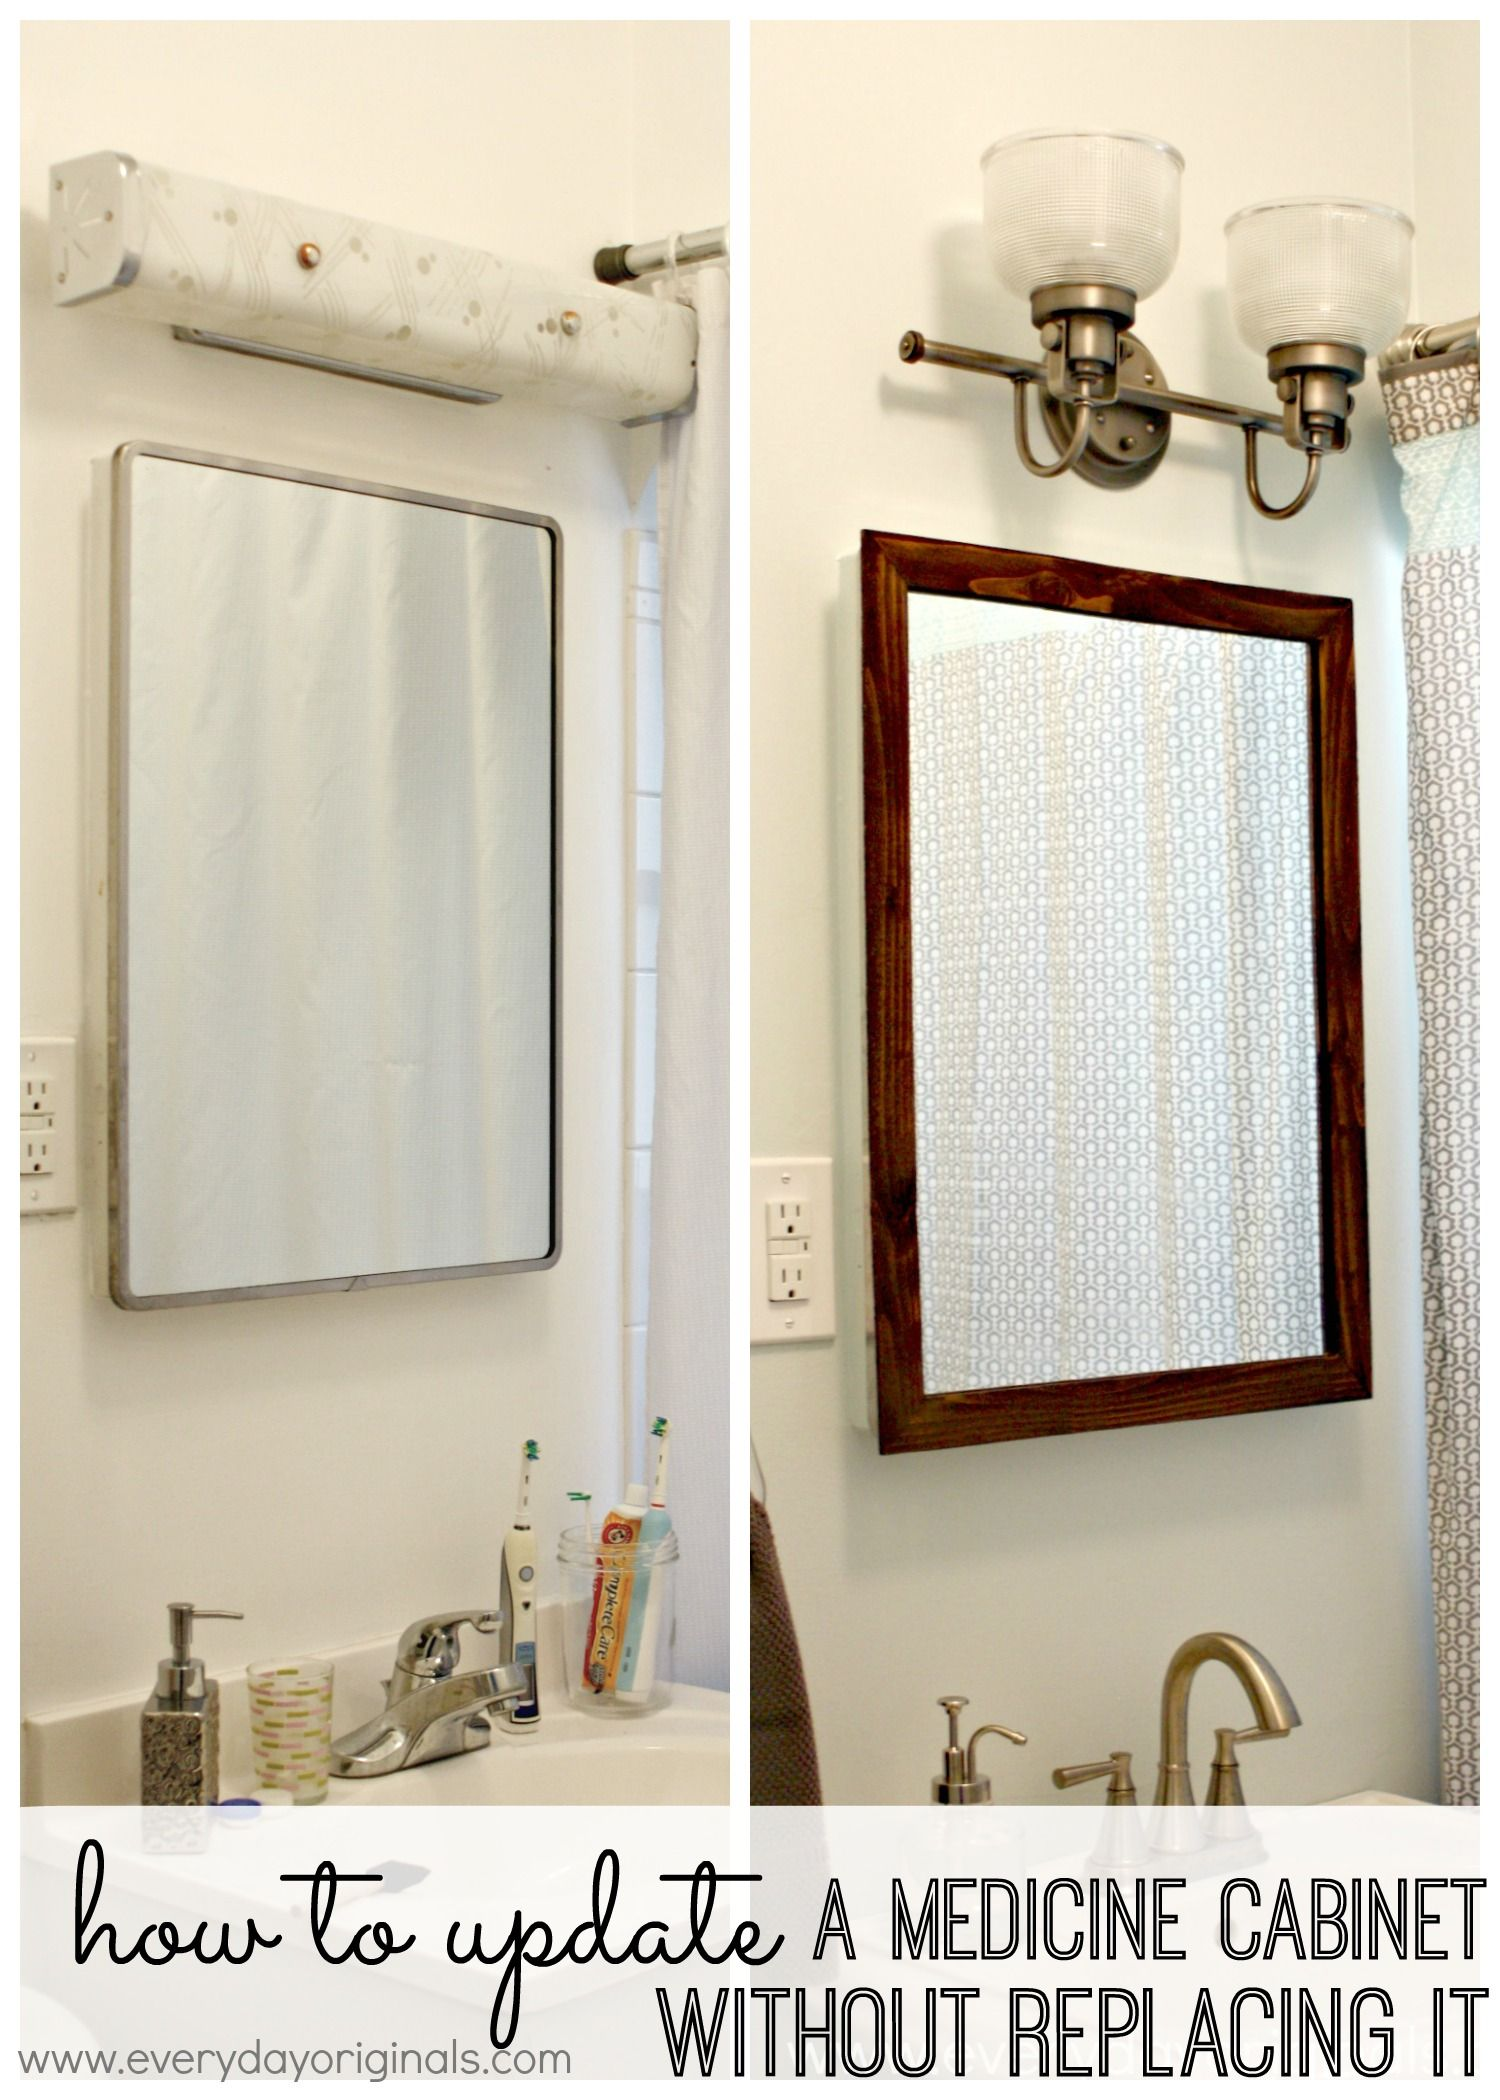 How To Update A Medicine Cabinet Without Replacing It Tired Of Looking At Mirror Wallsbathroom Mirrorssmall